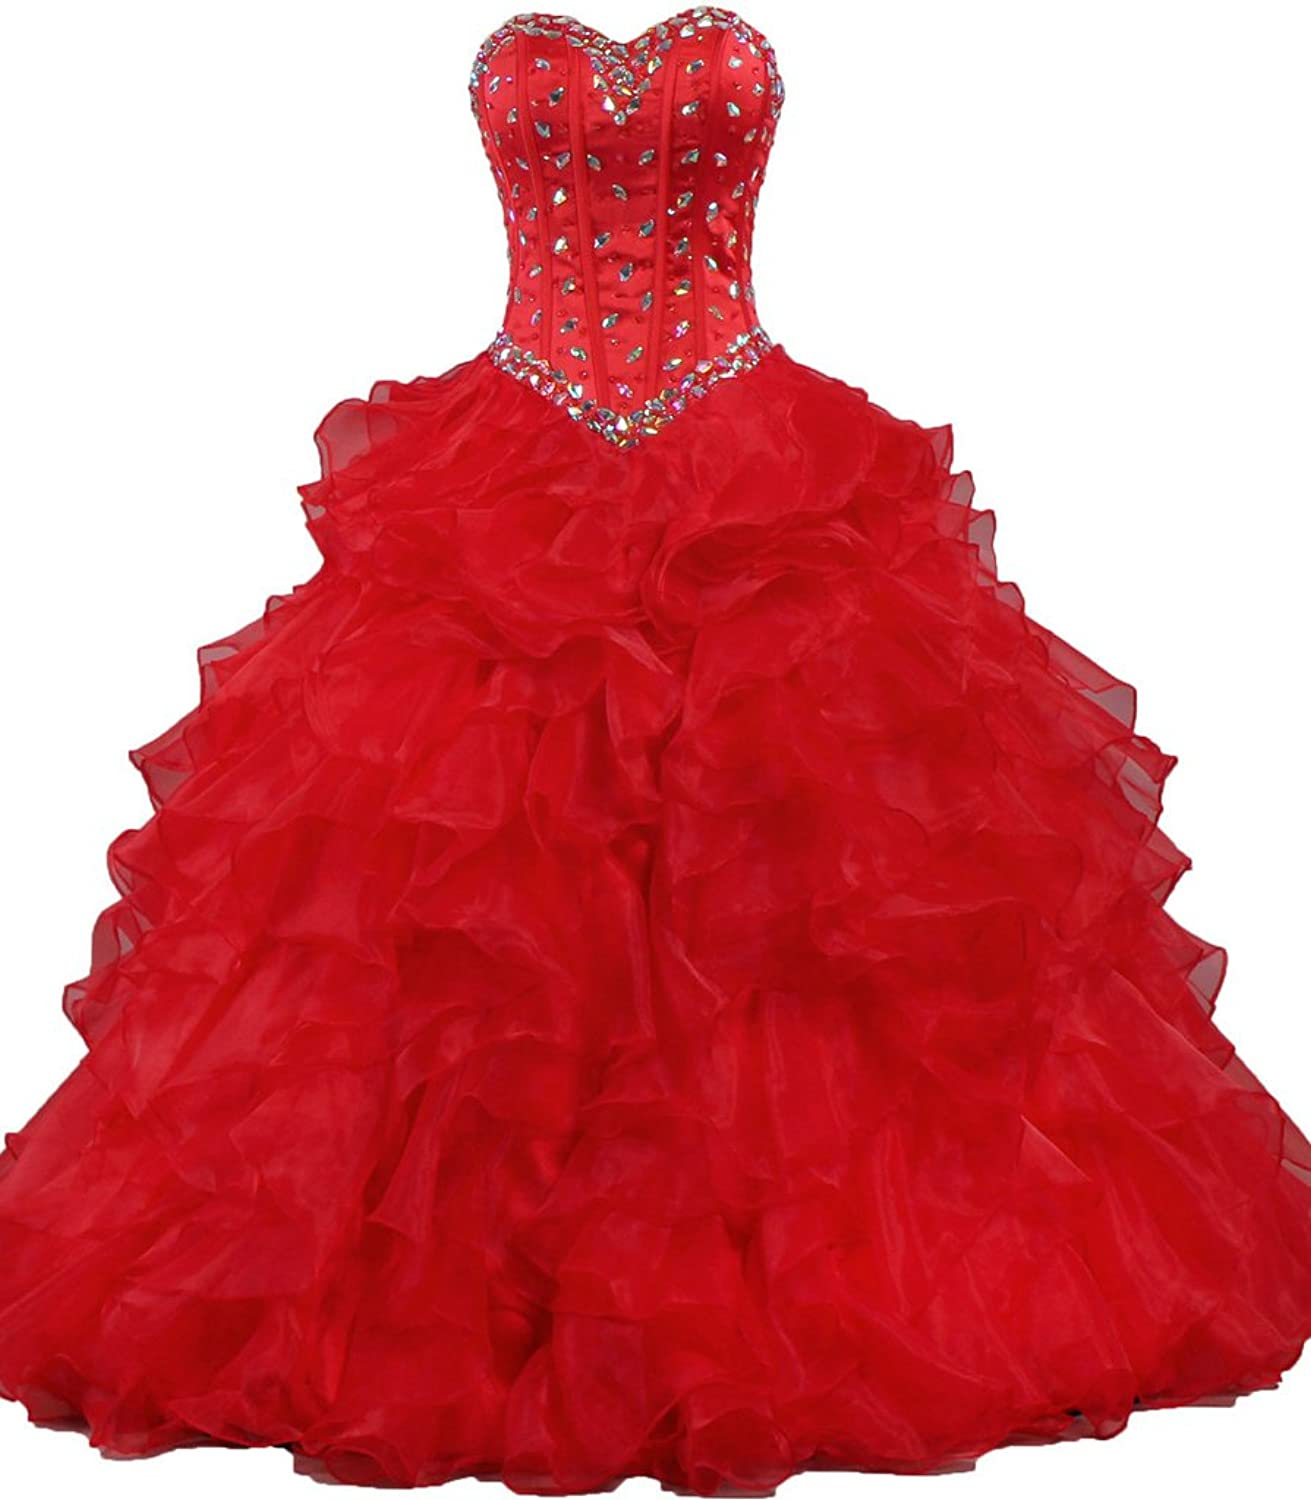 ANTS Women's Strapless Crystal Prom Quinceanera Party Dress Ball Gown